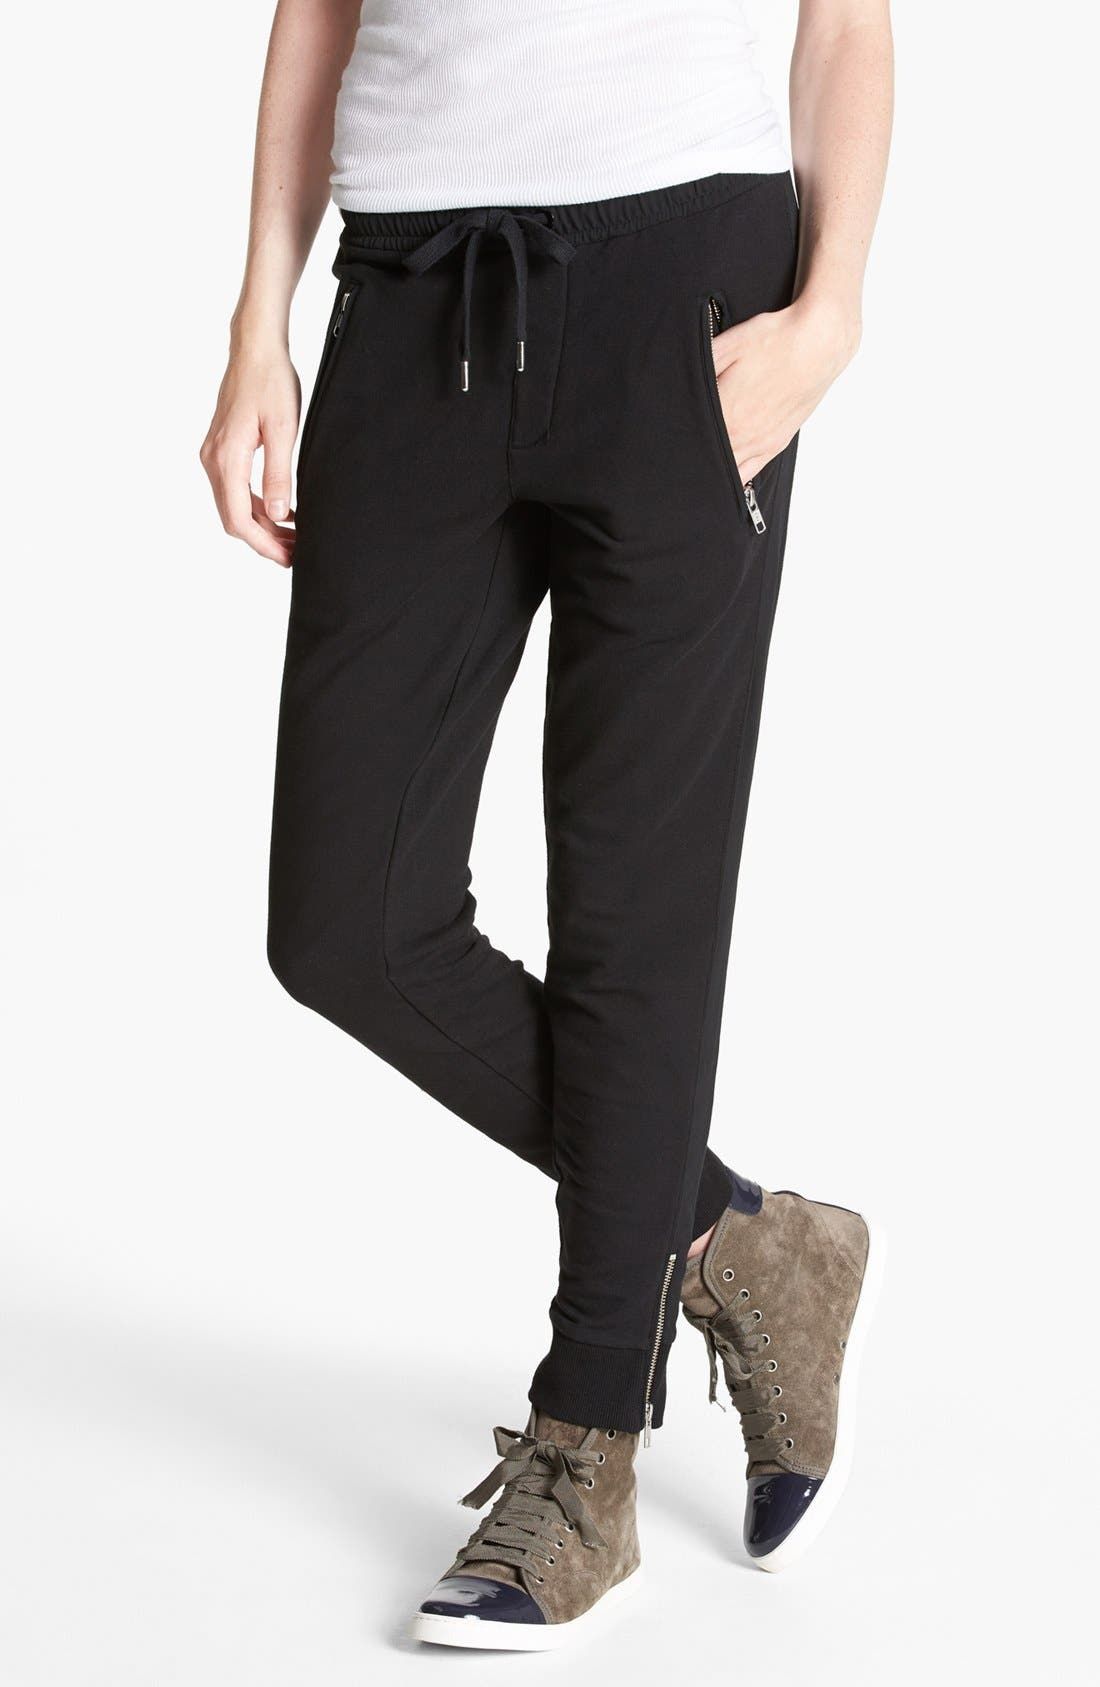 Alternate Image 1 Selected - The Kooples Side Stripe Sweatpants